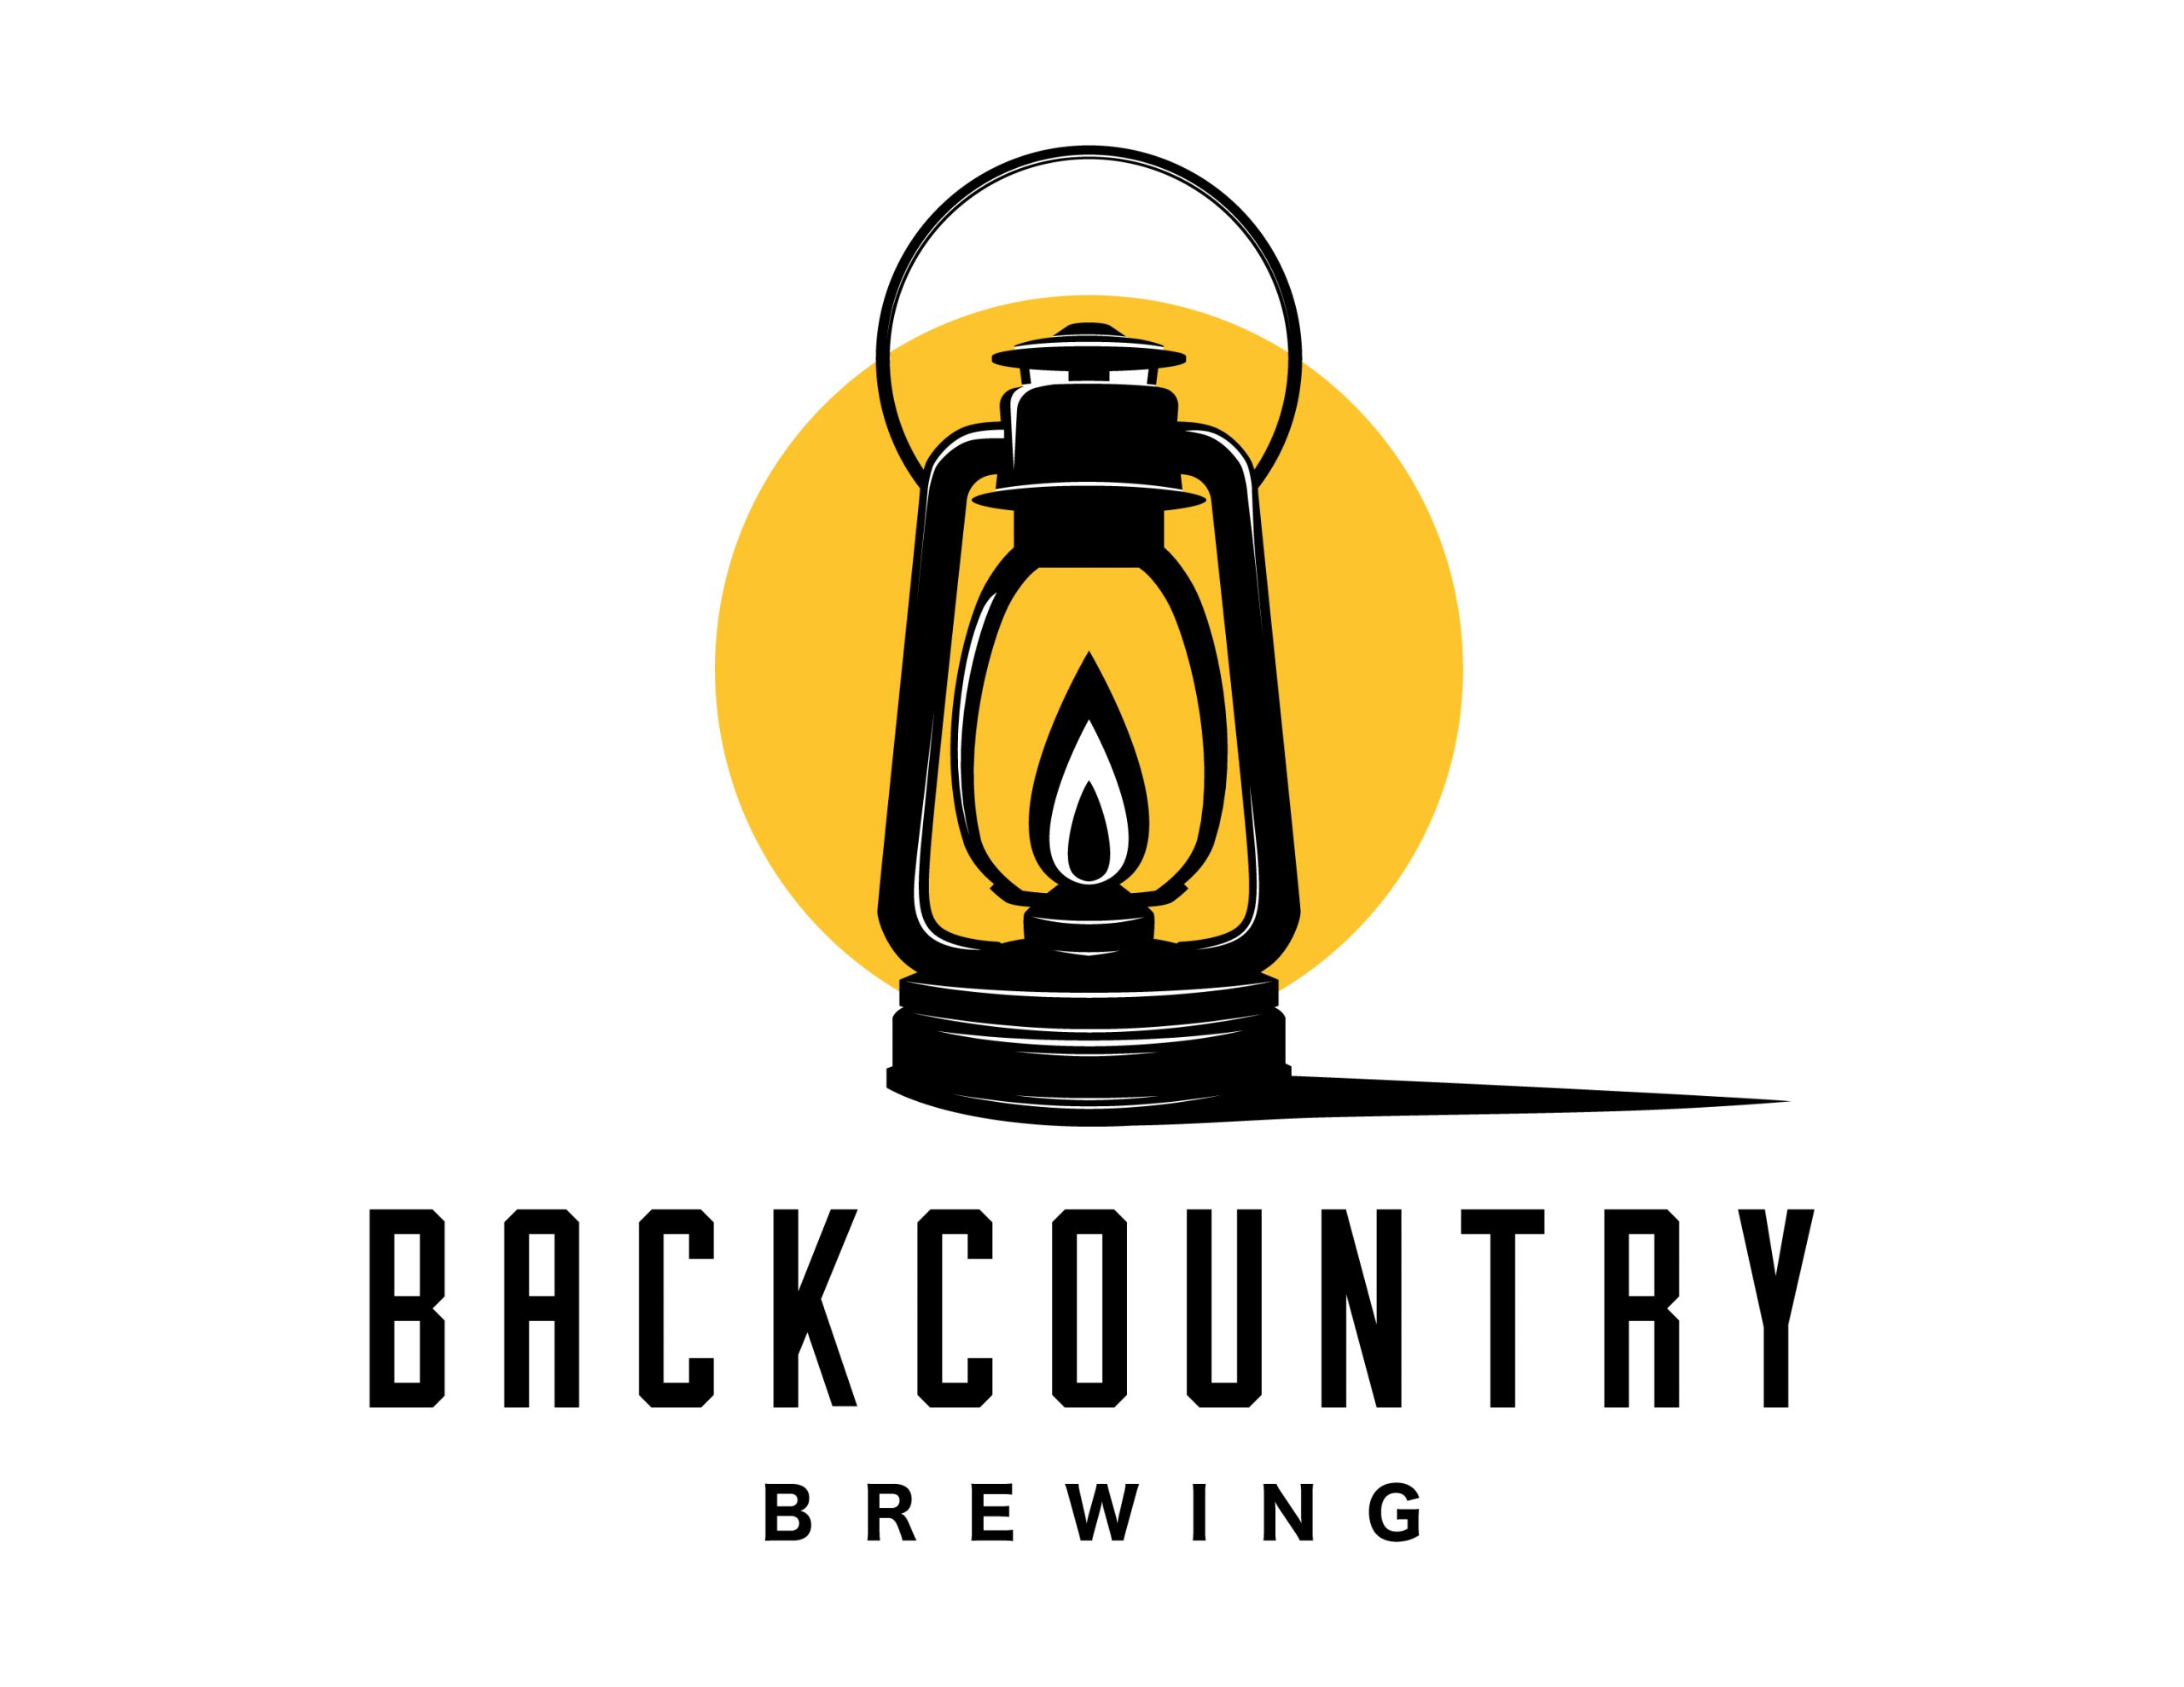 Backcountry Brewing - Squamish Brewery